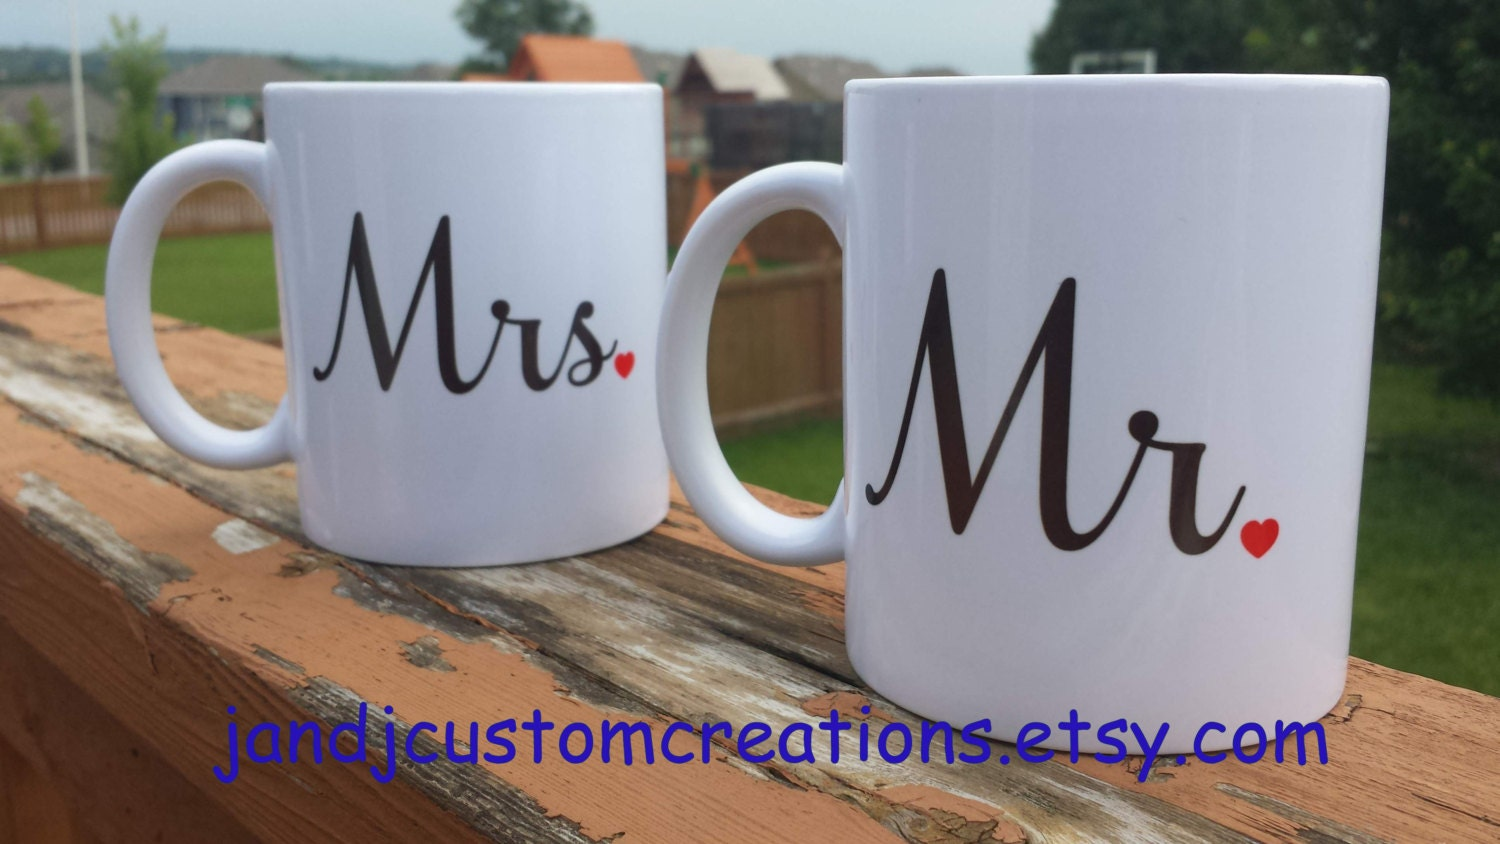 Personalized Coffee Mugs Wedding Gift : Mr and Mrs Coffee mugs personalized Coffee Mug Wedding gift